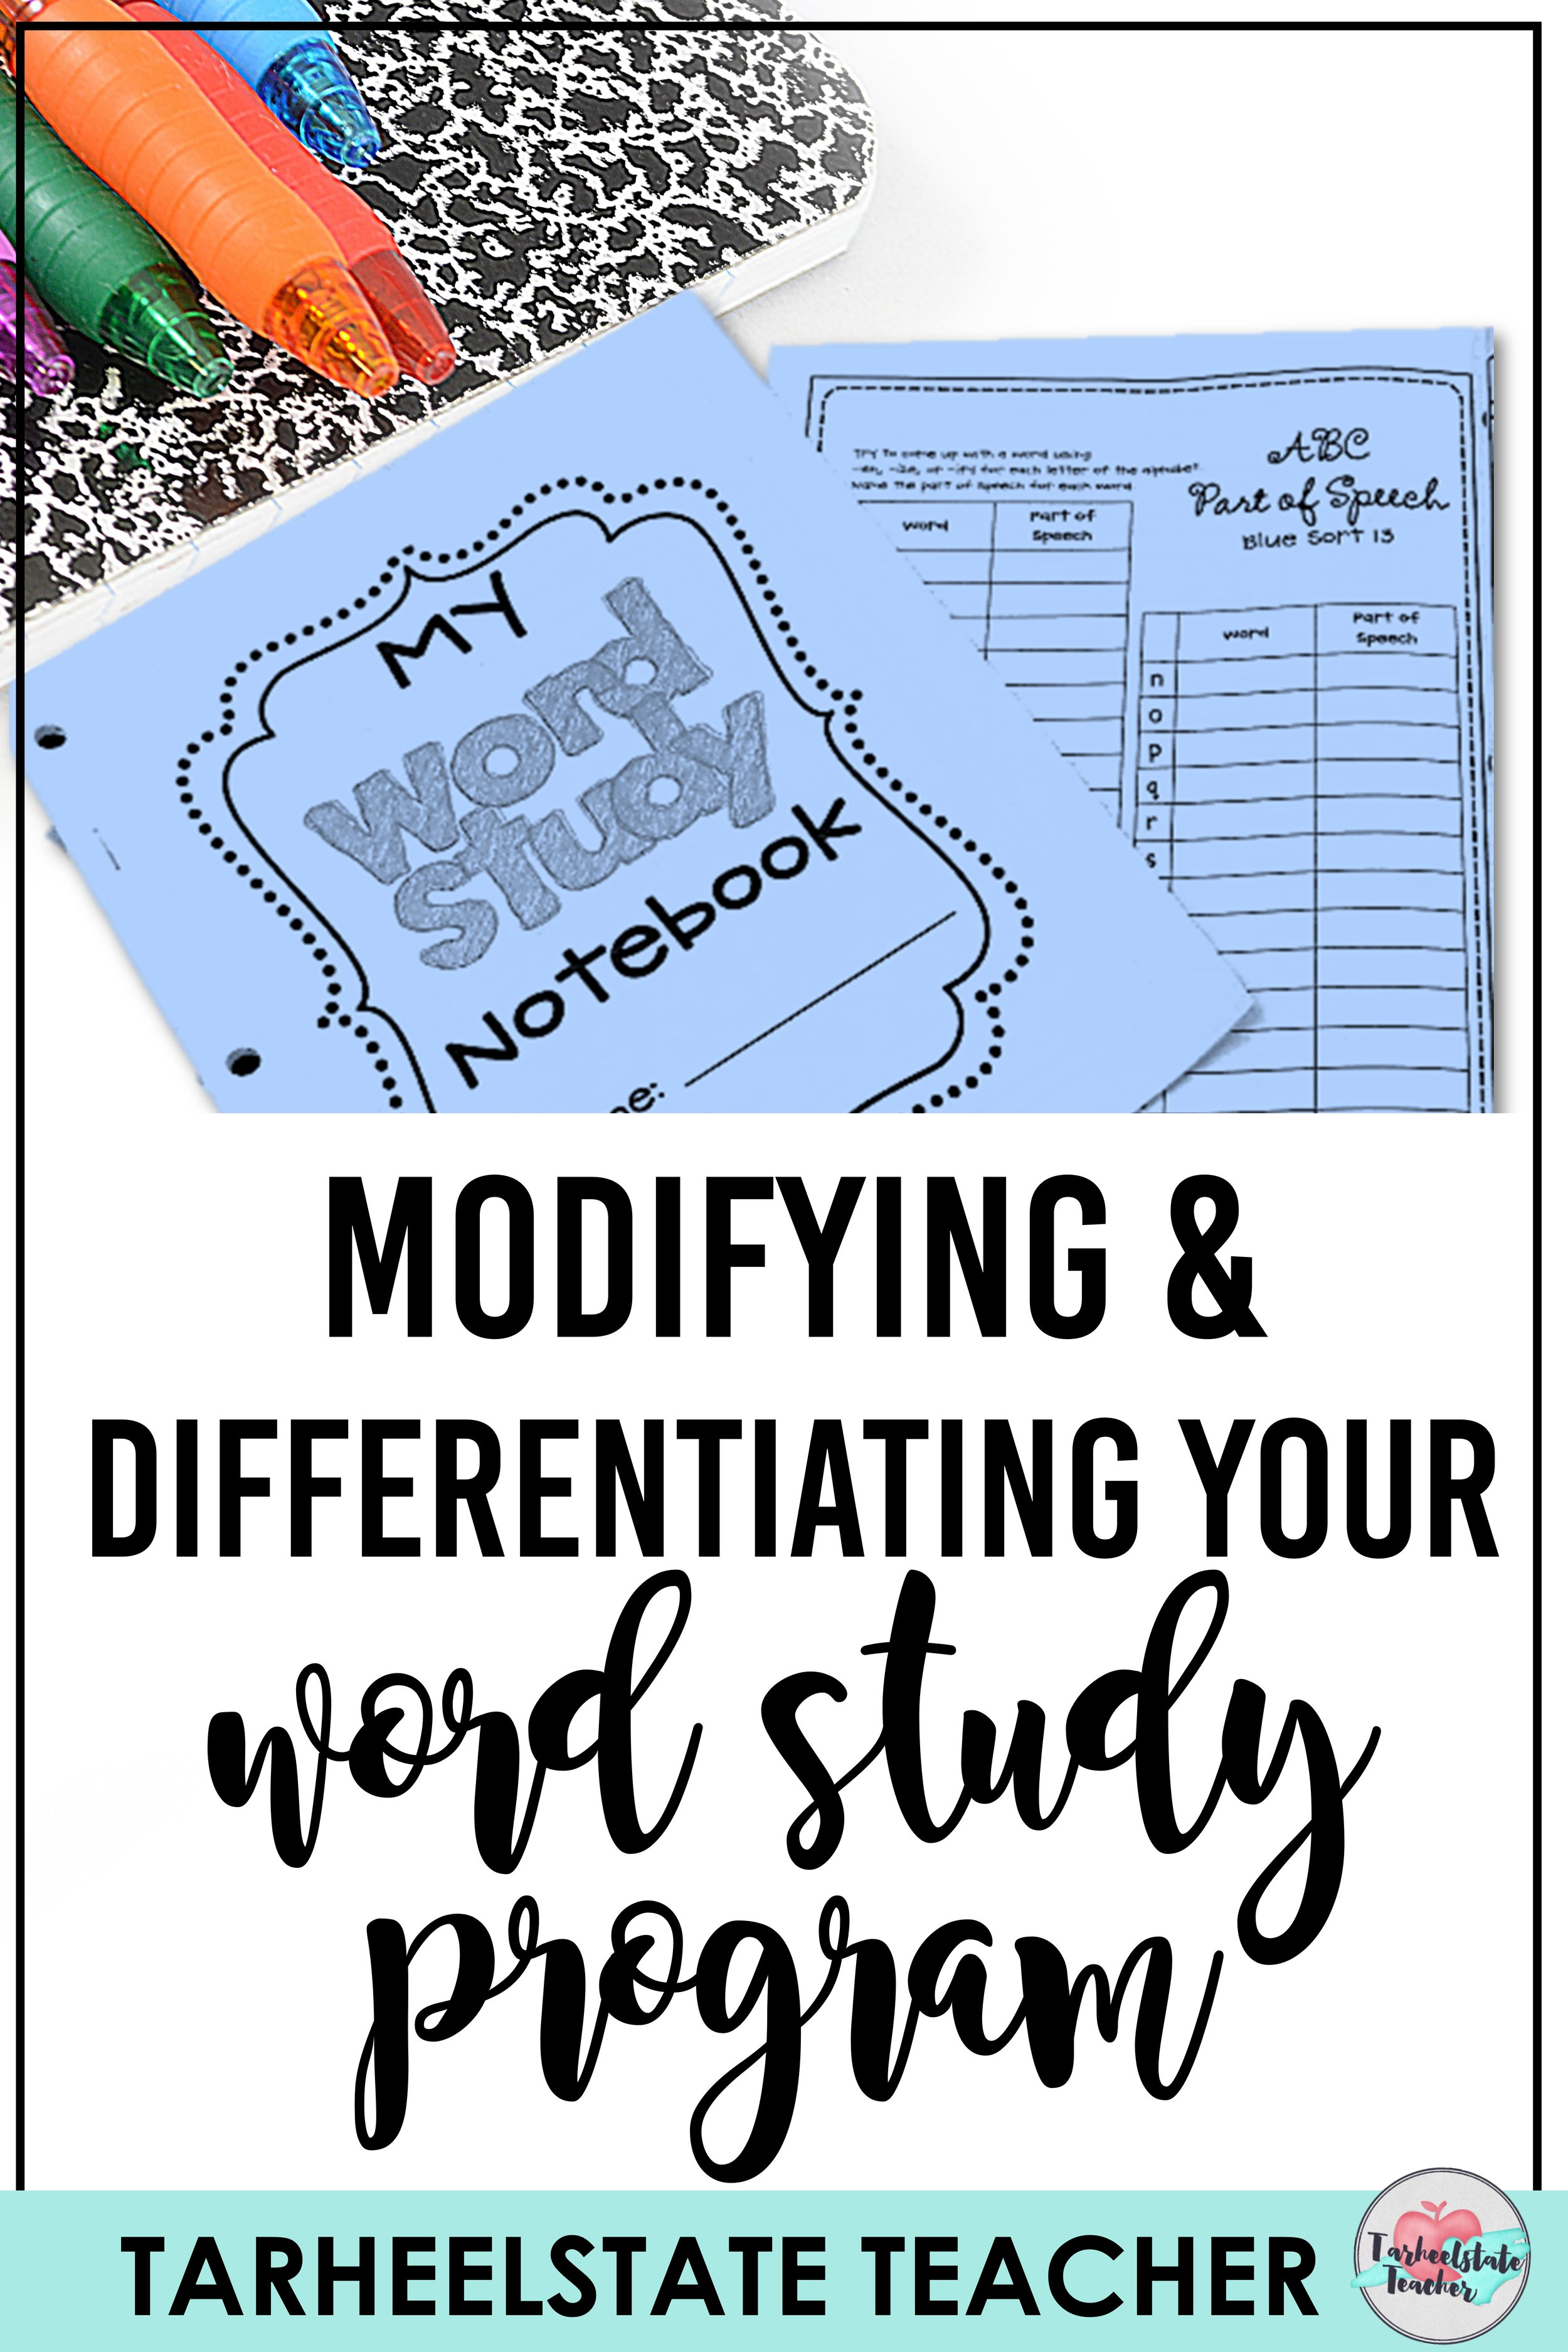 differentiating word study routine.JPG